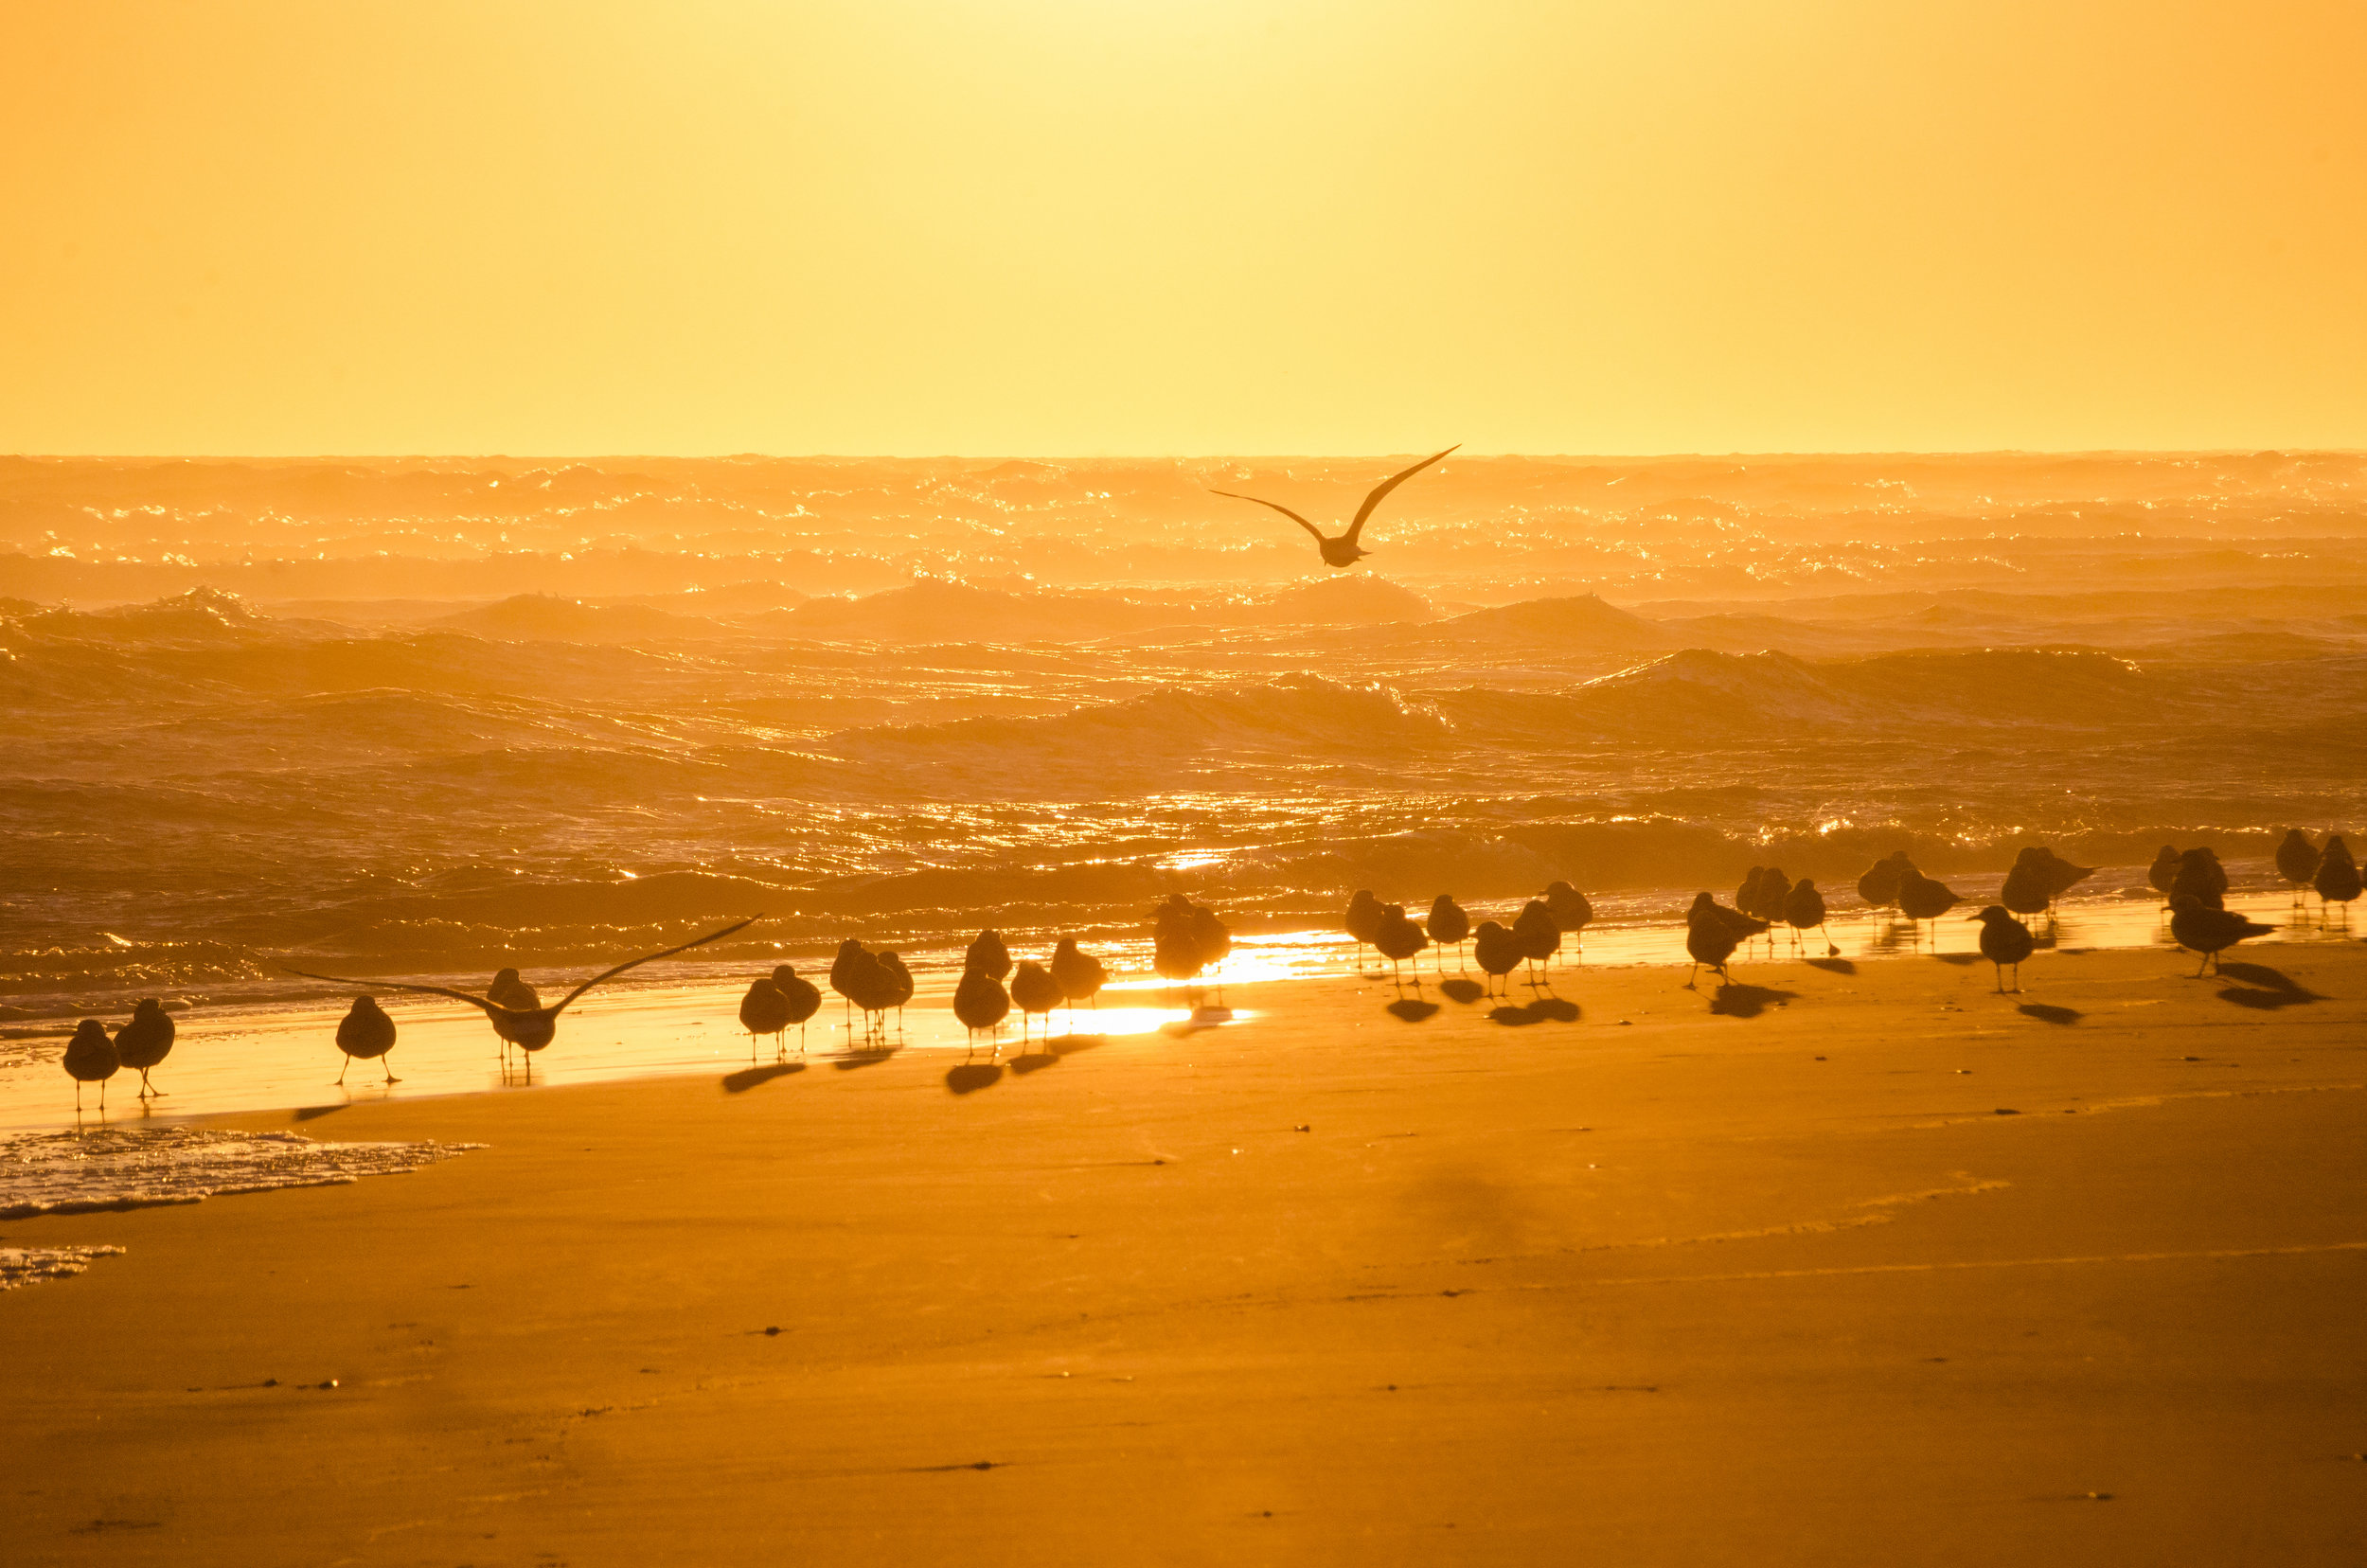 sunset-Frisco-beach-seagulls-orange-Hatteras-Outer Banks-OBX-North Carolina.jpg